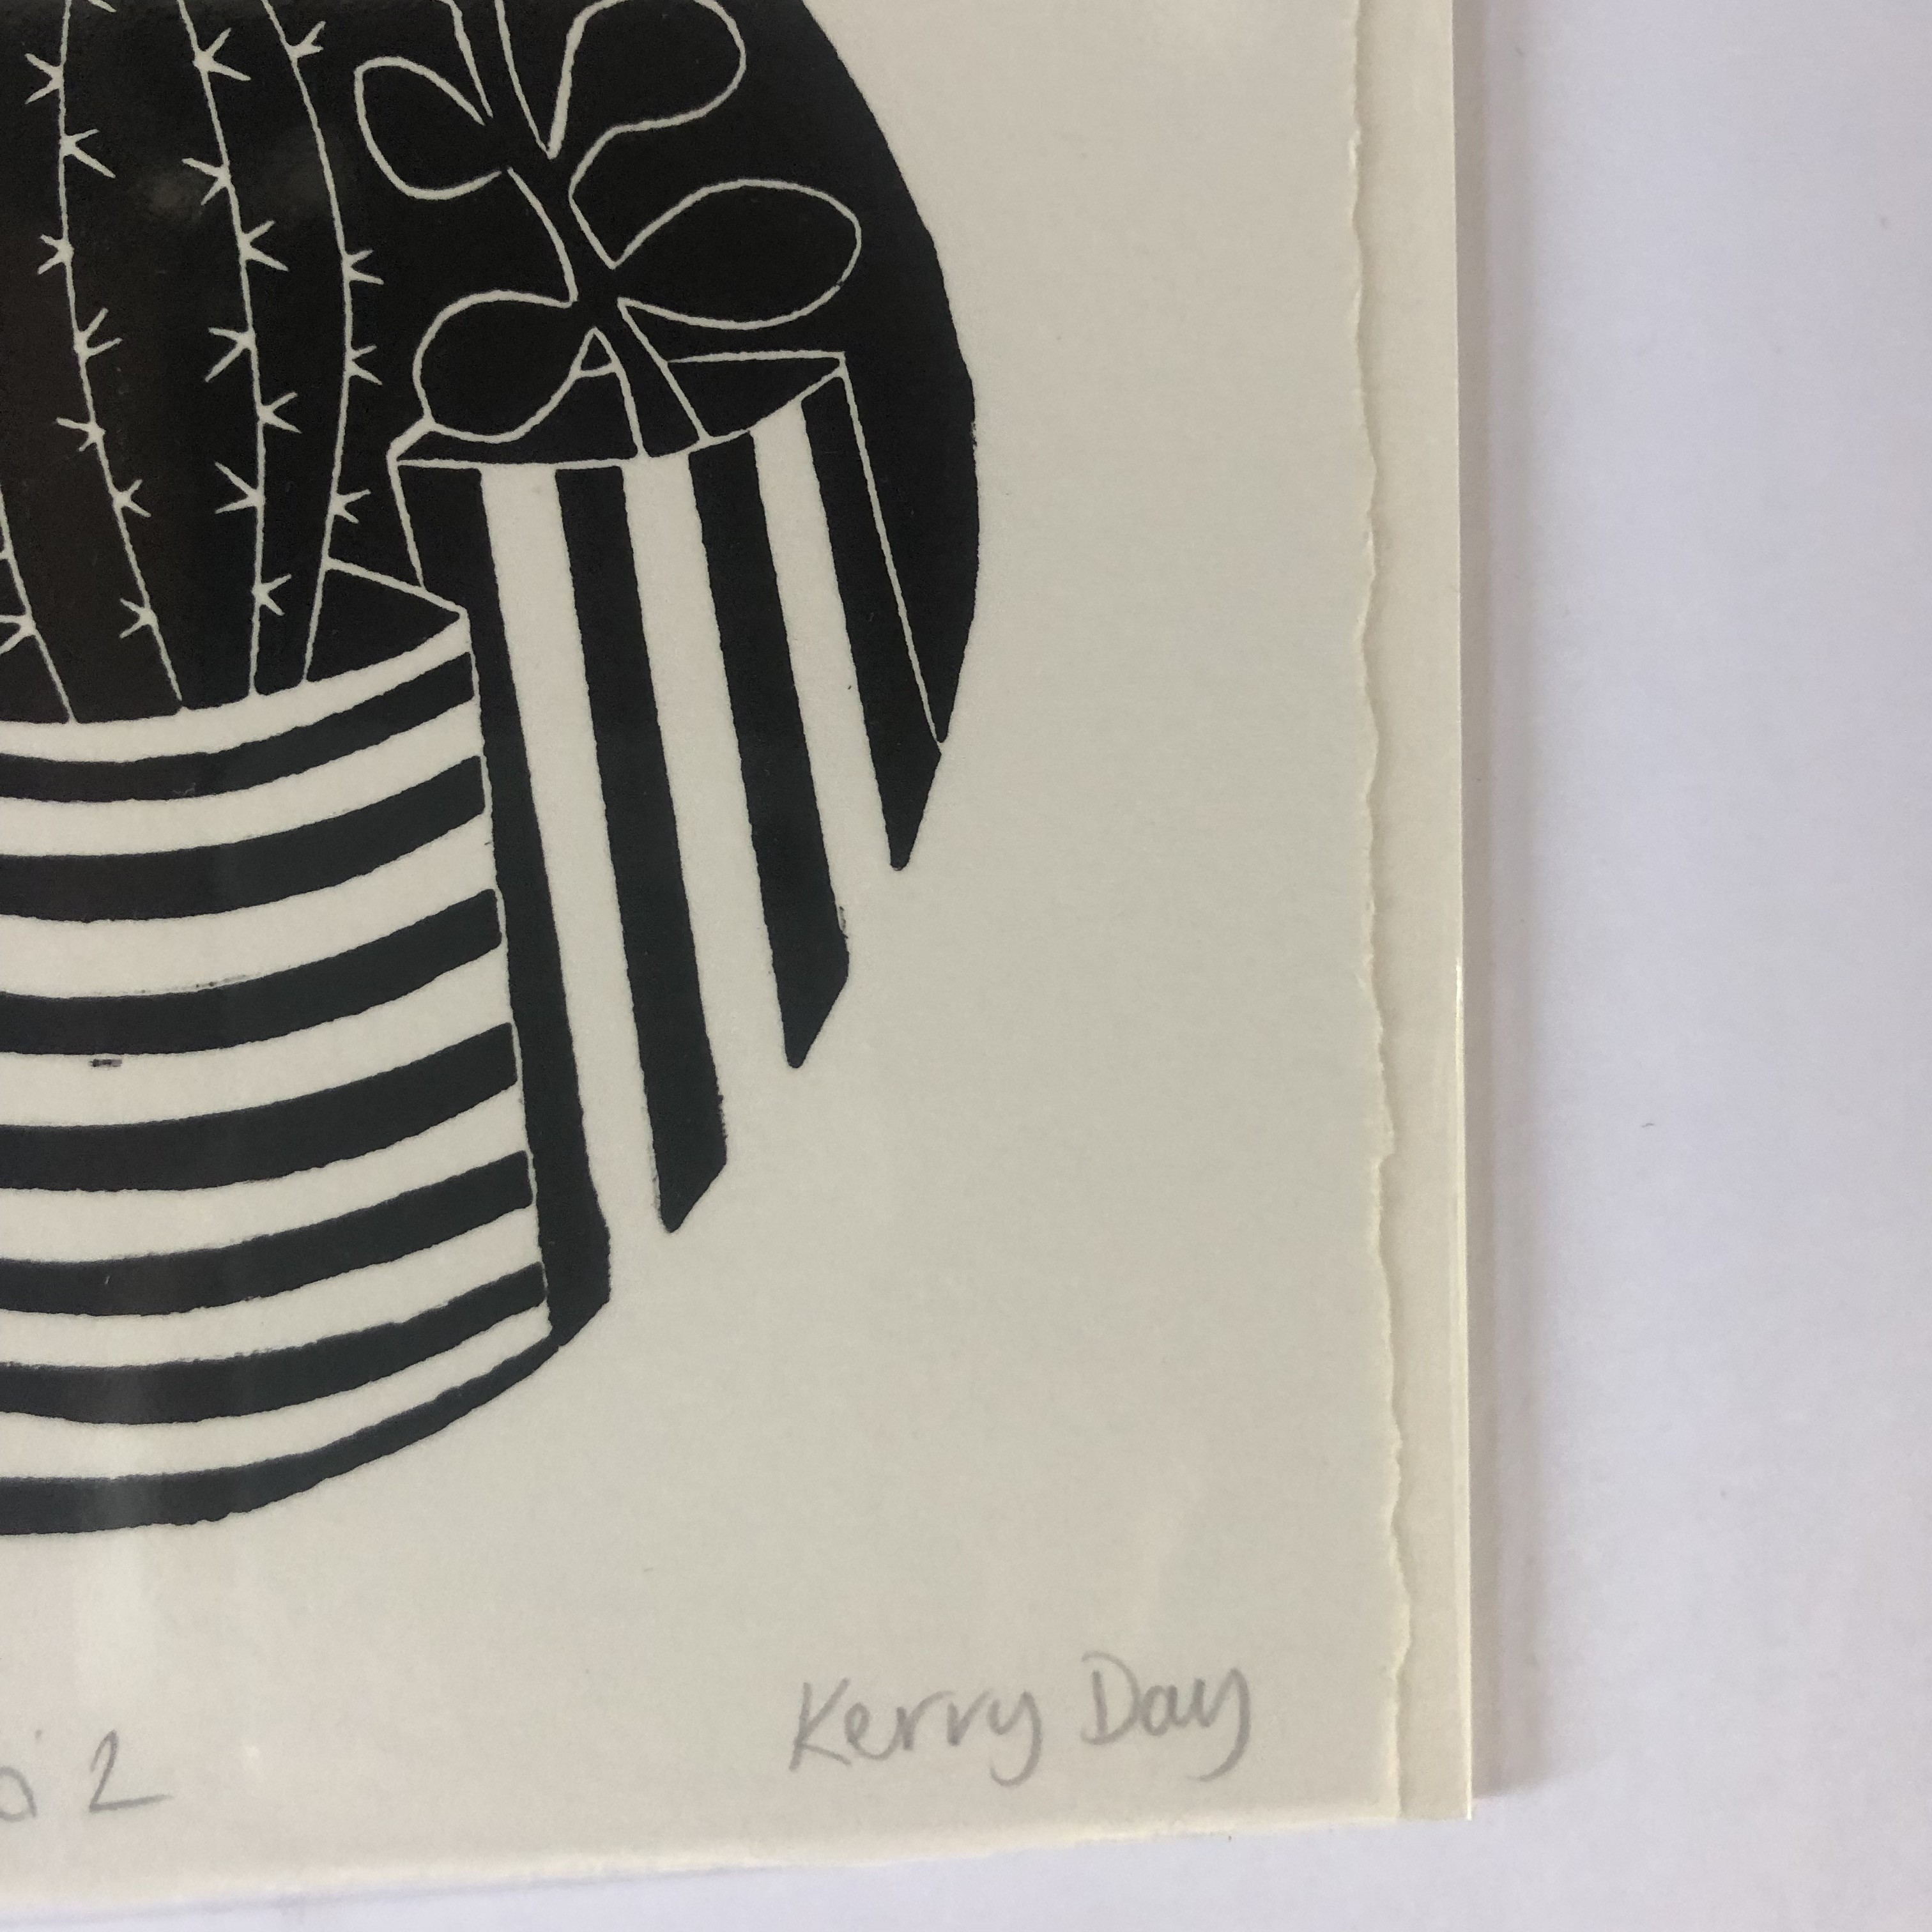 Cacti 2 is an open edition linocut print by Kerry Day.